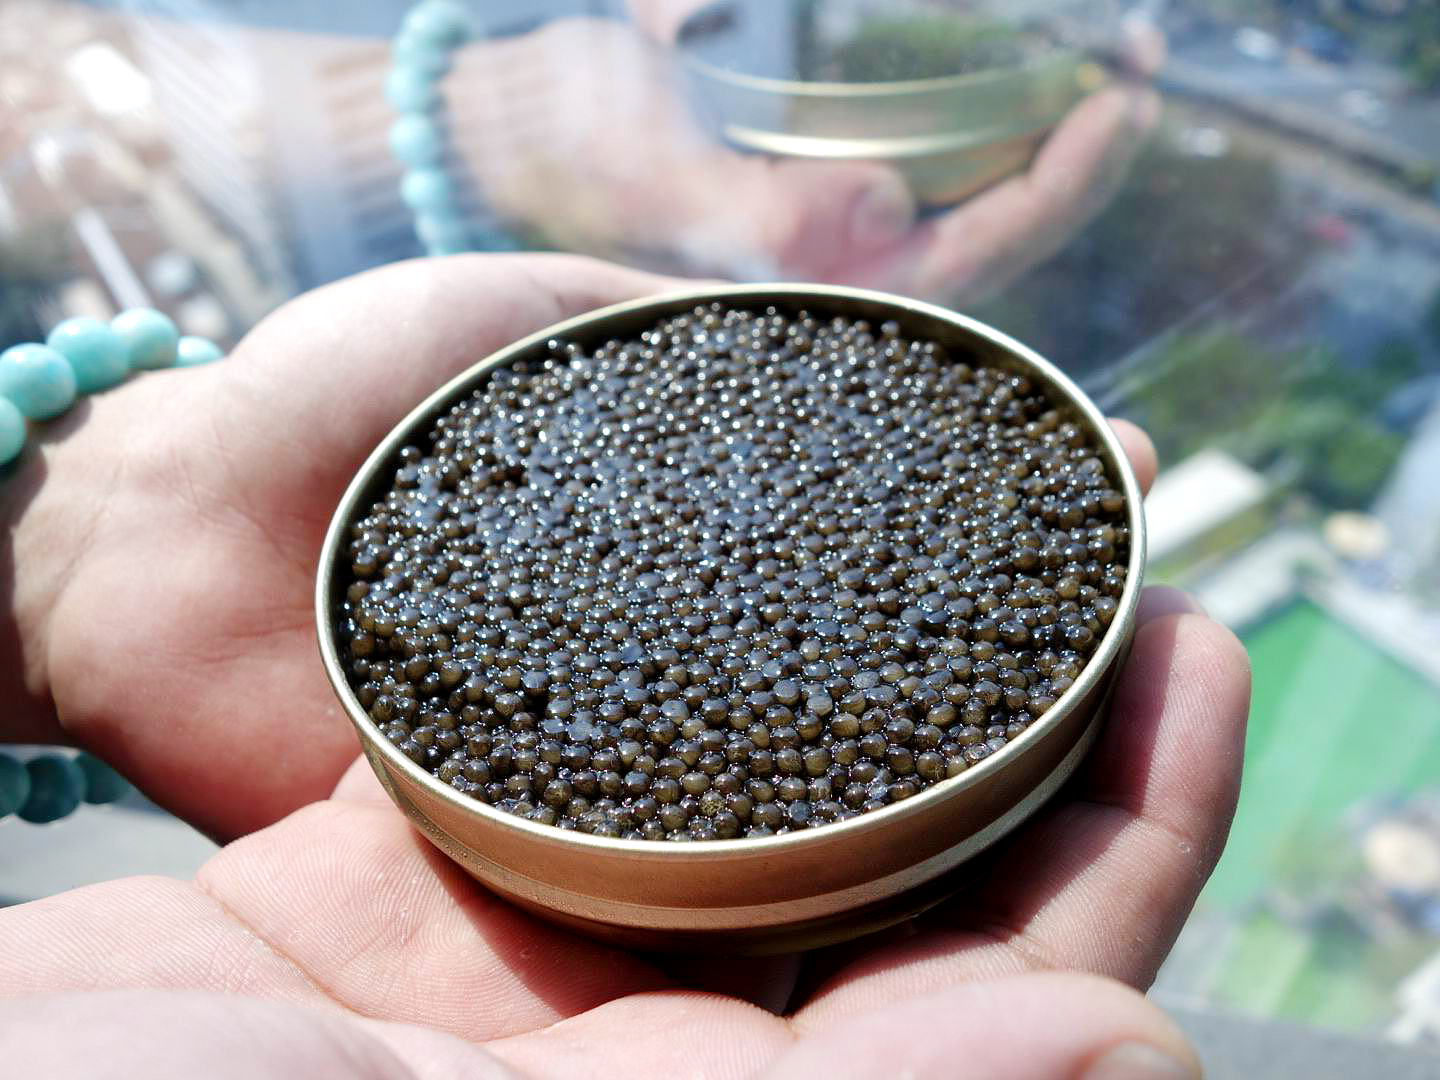 In Thailand, the main consumers of sturgeon and black caviar are the members of the upper middle class.